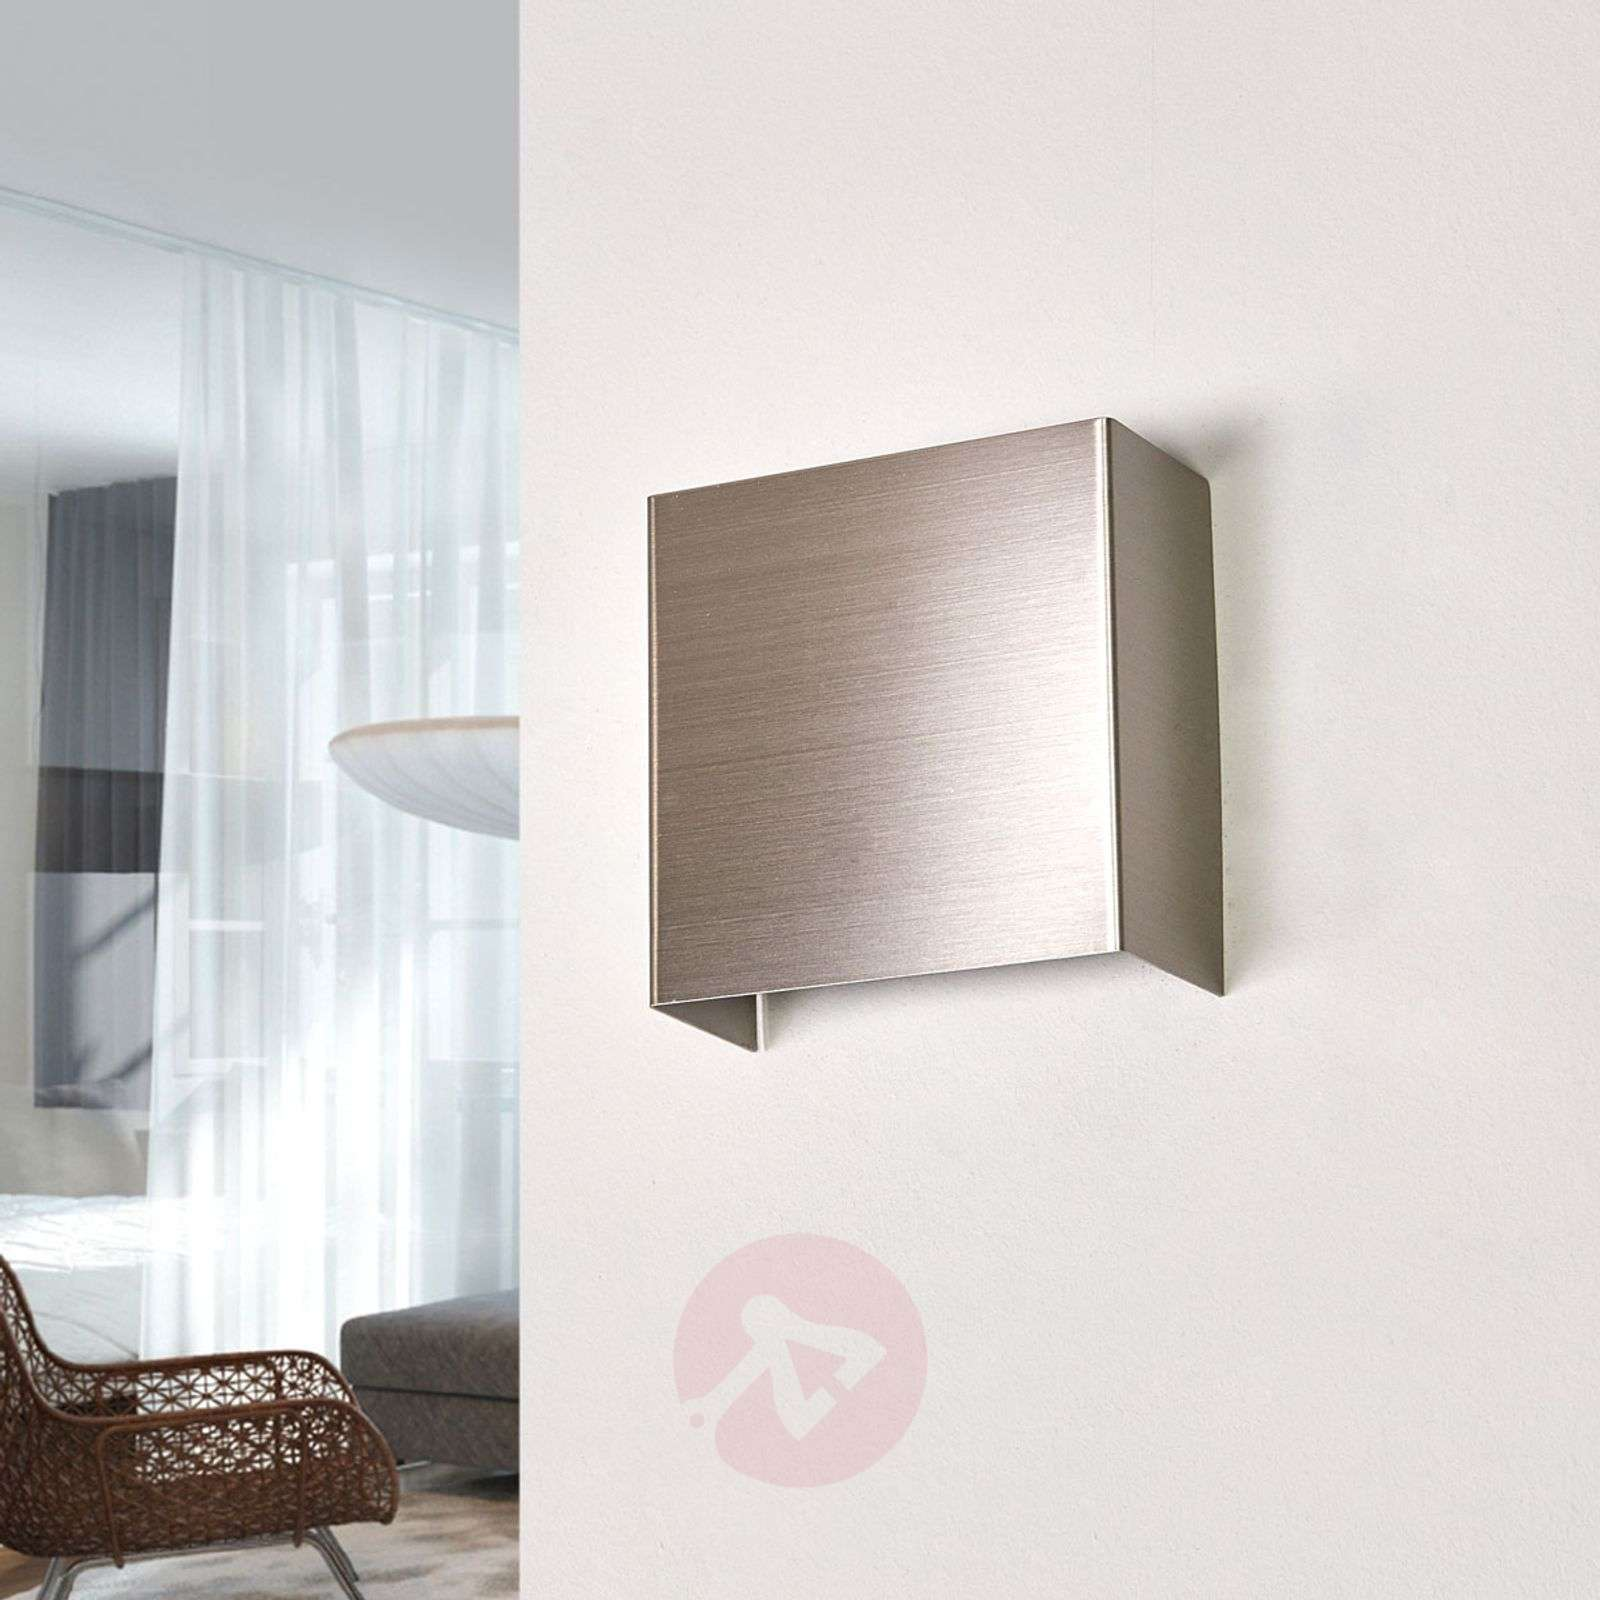 Metalen LED-wandlamp Enja-9994028-01